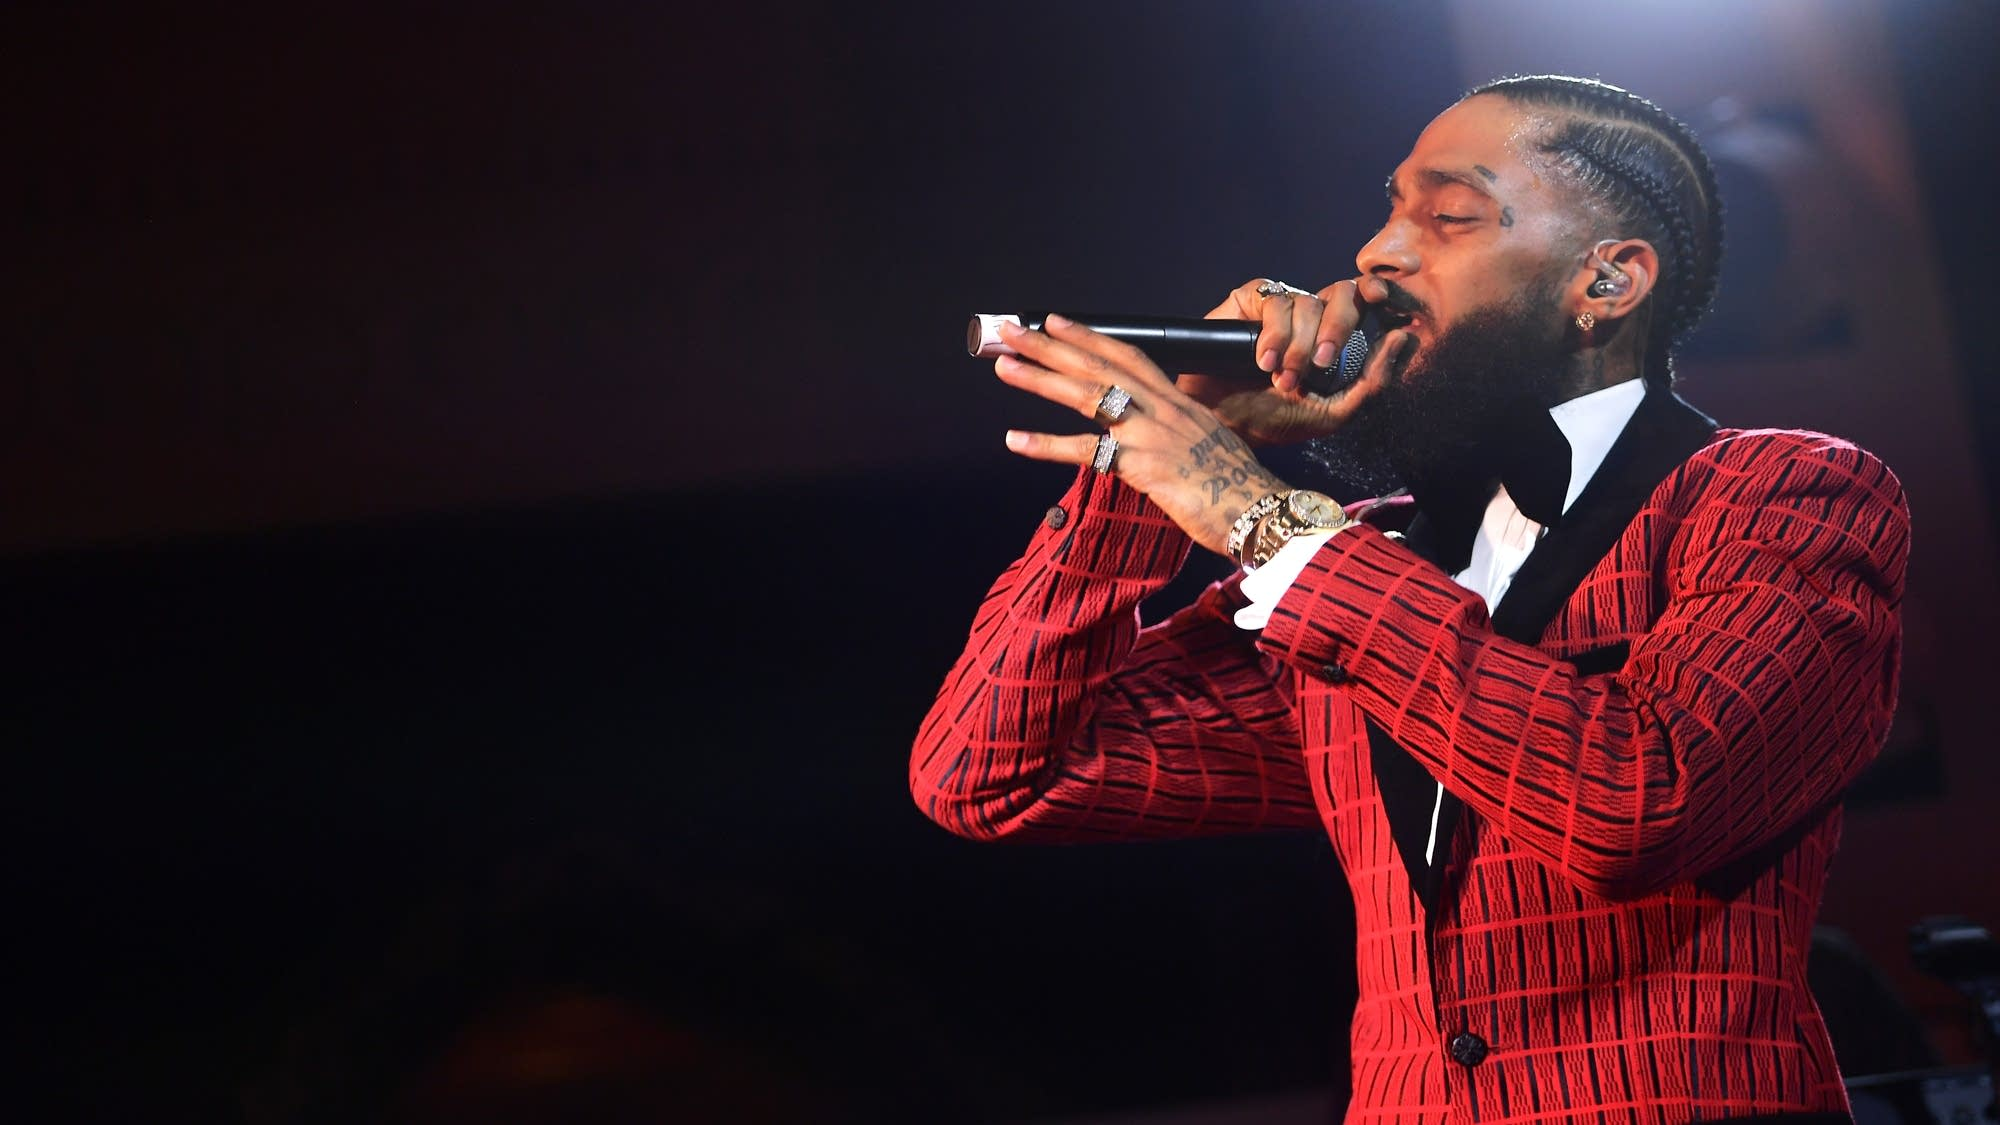 Nipsey Hussle gets Fatally Shot outside his Clothing Store